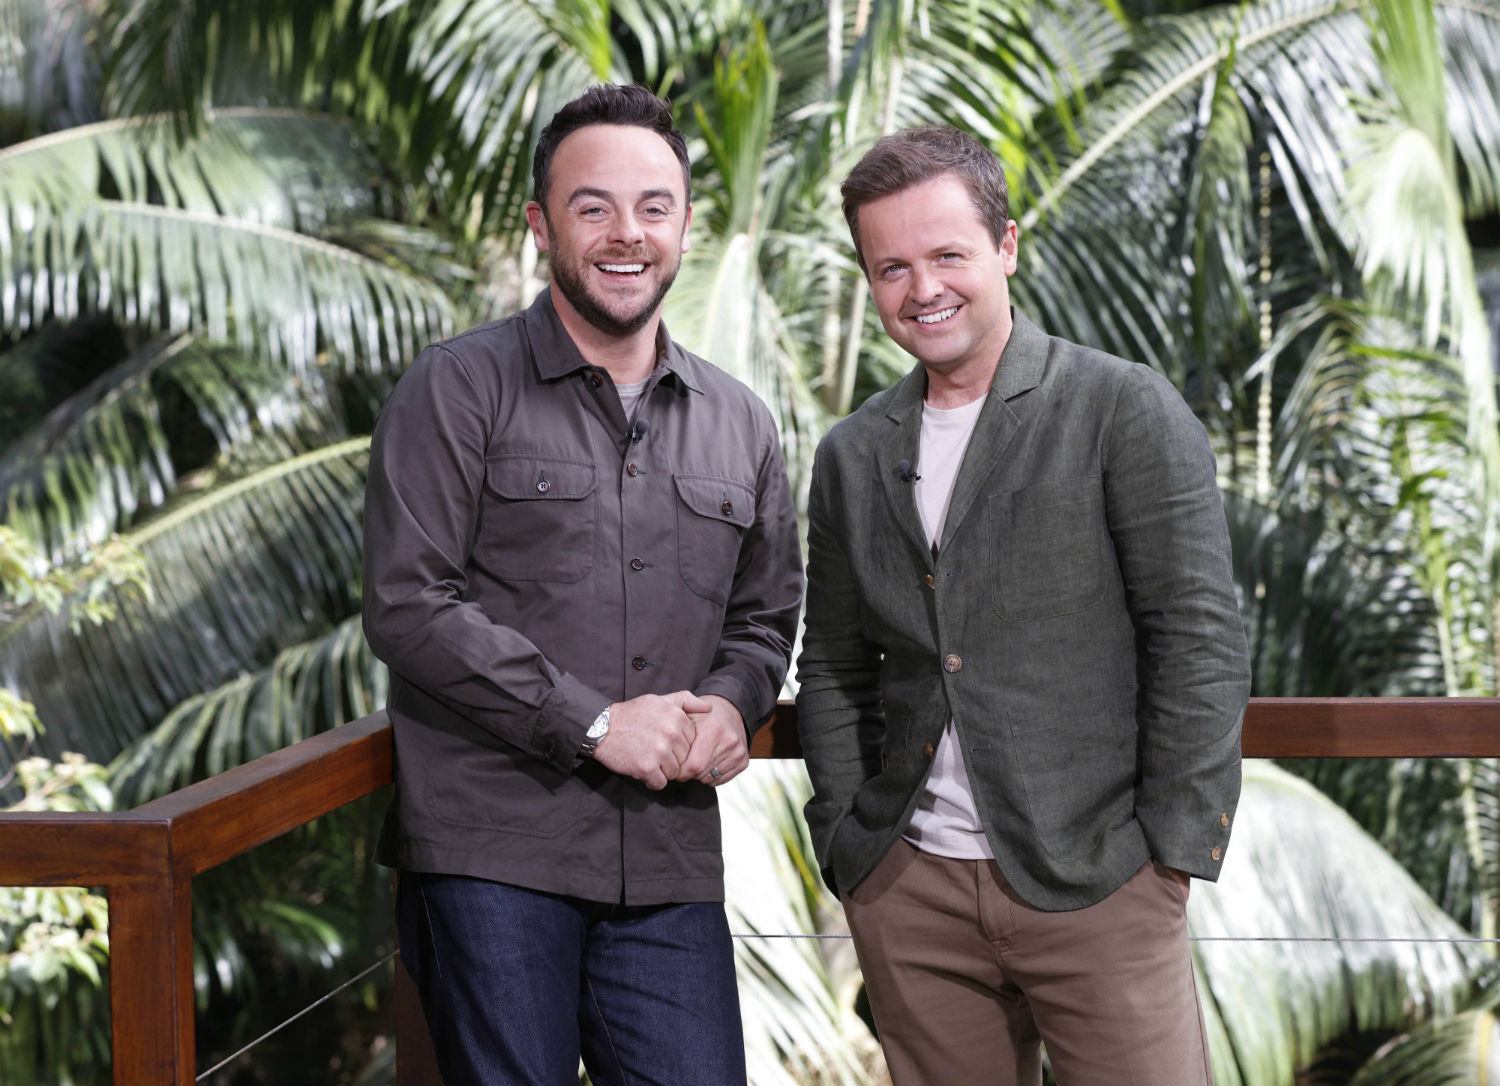 This first glimpse at tonight's I'm A Celeb has arrived